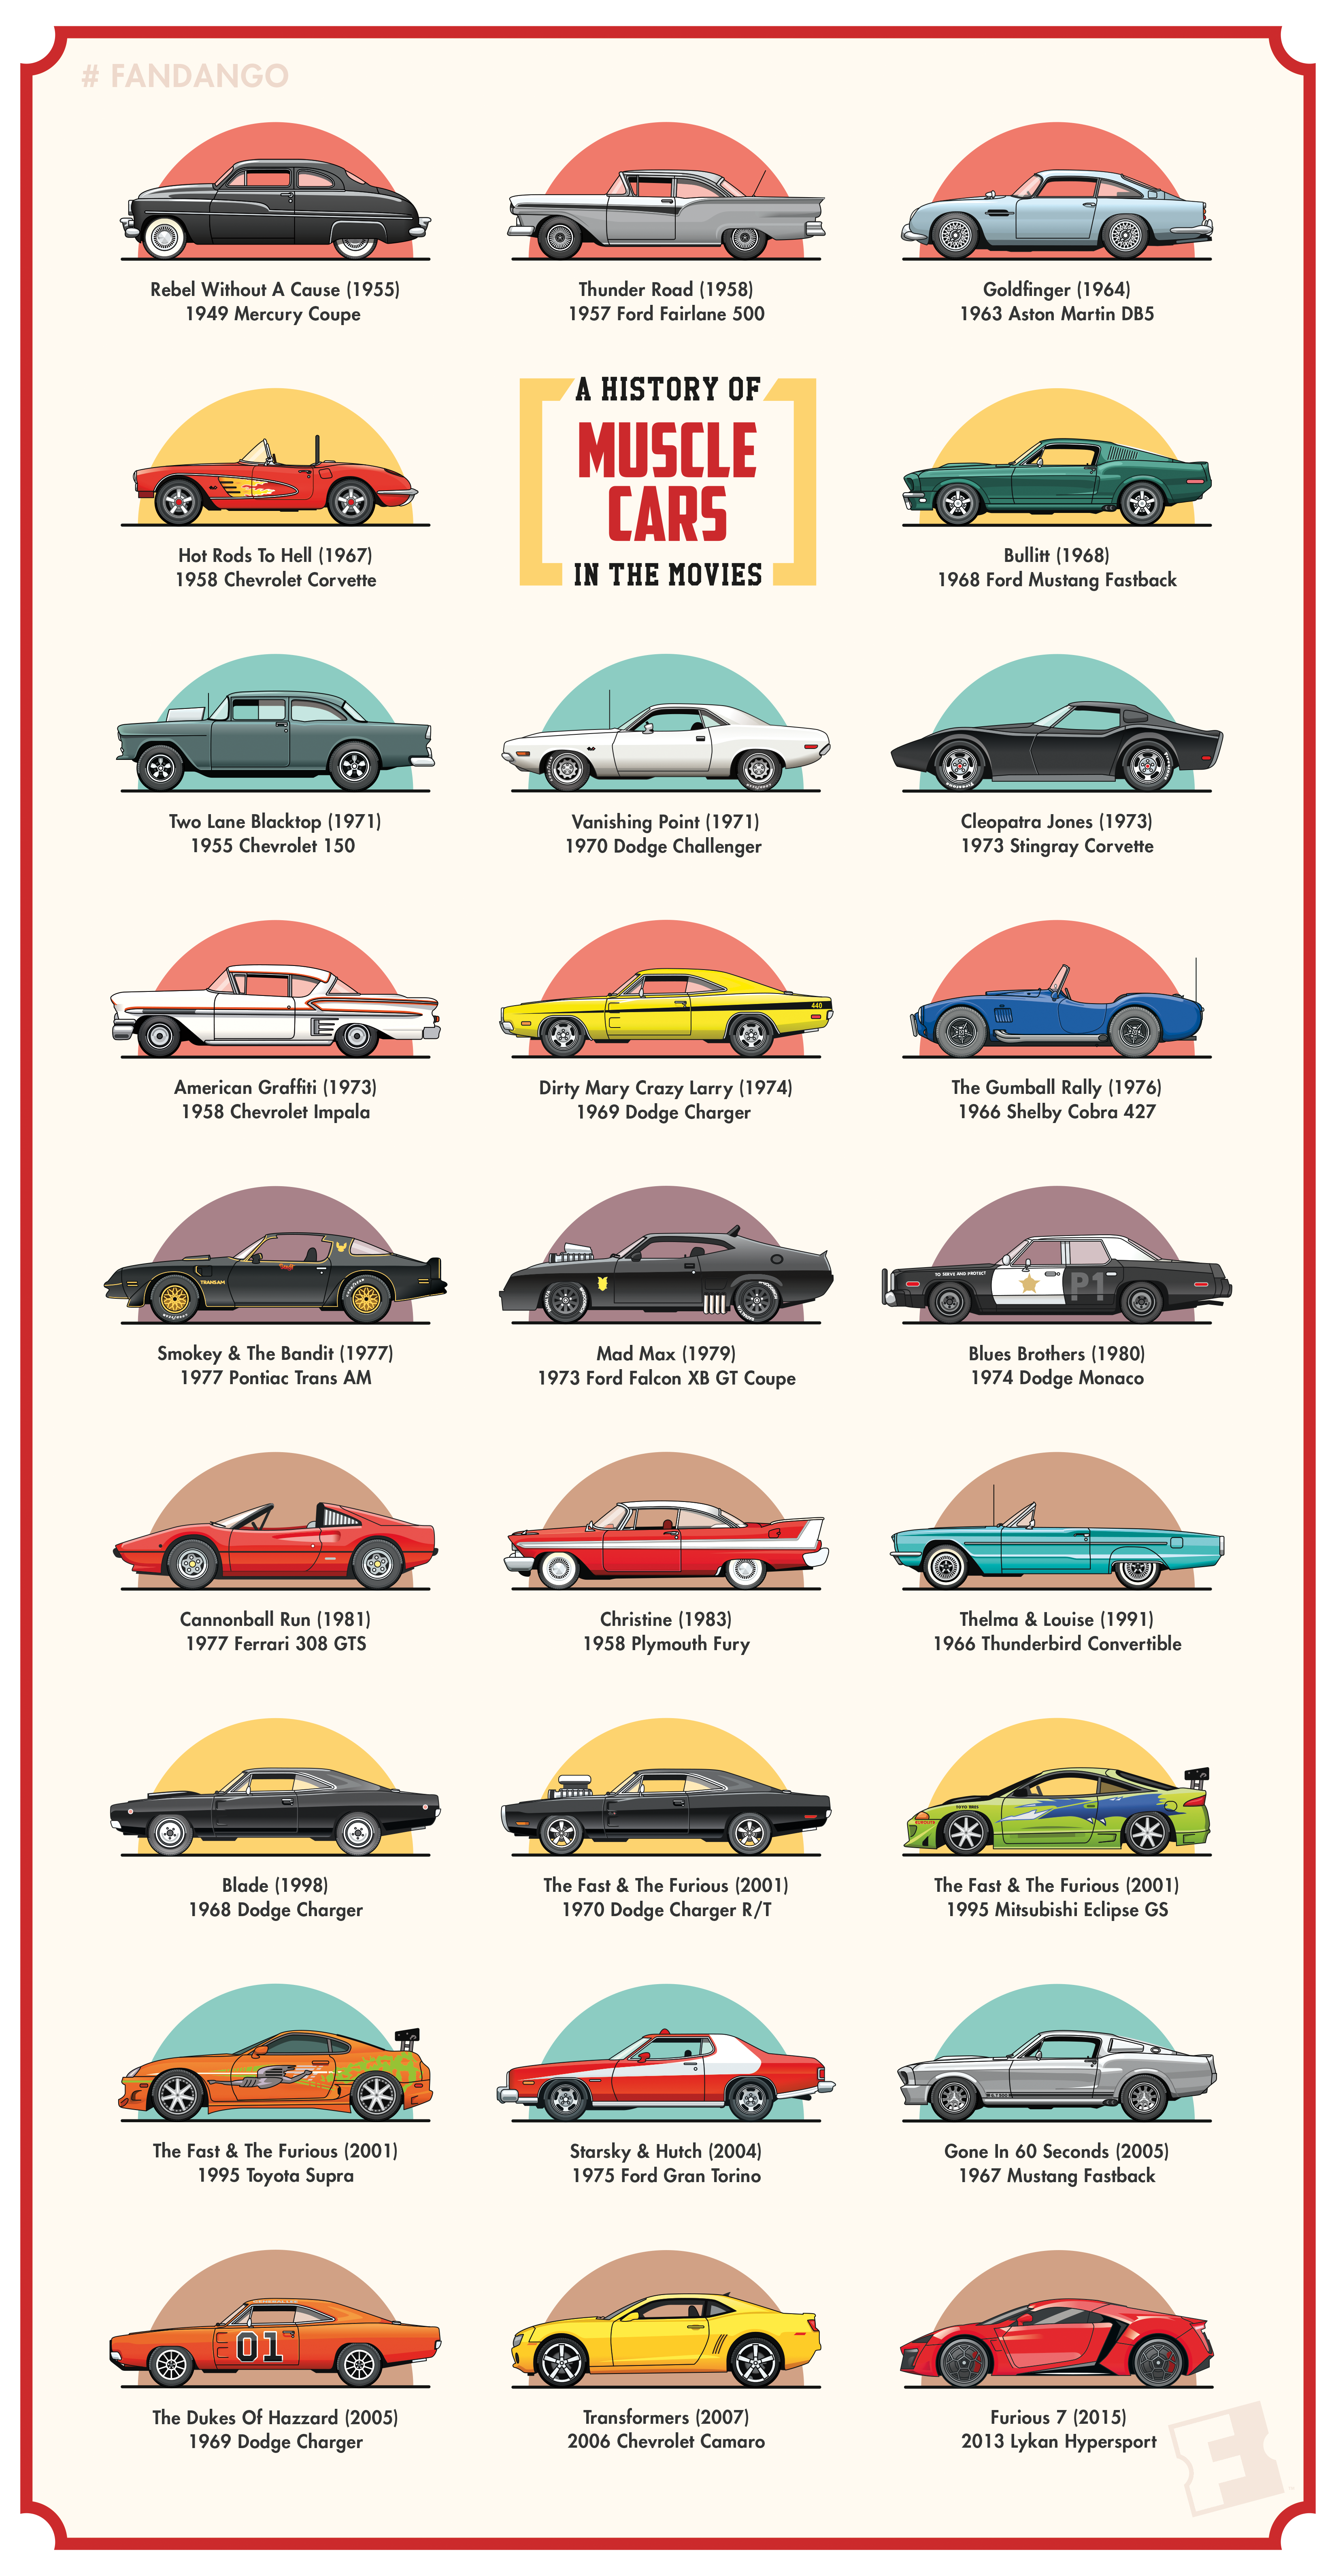 hight resolution of put the pedal to the metal and see if you can find your favorite movie muscle car in this revved up poster